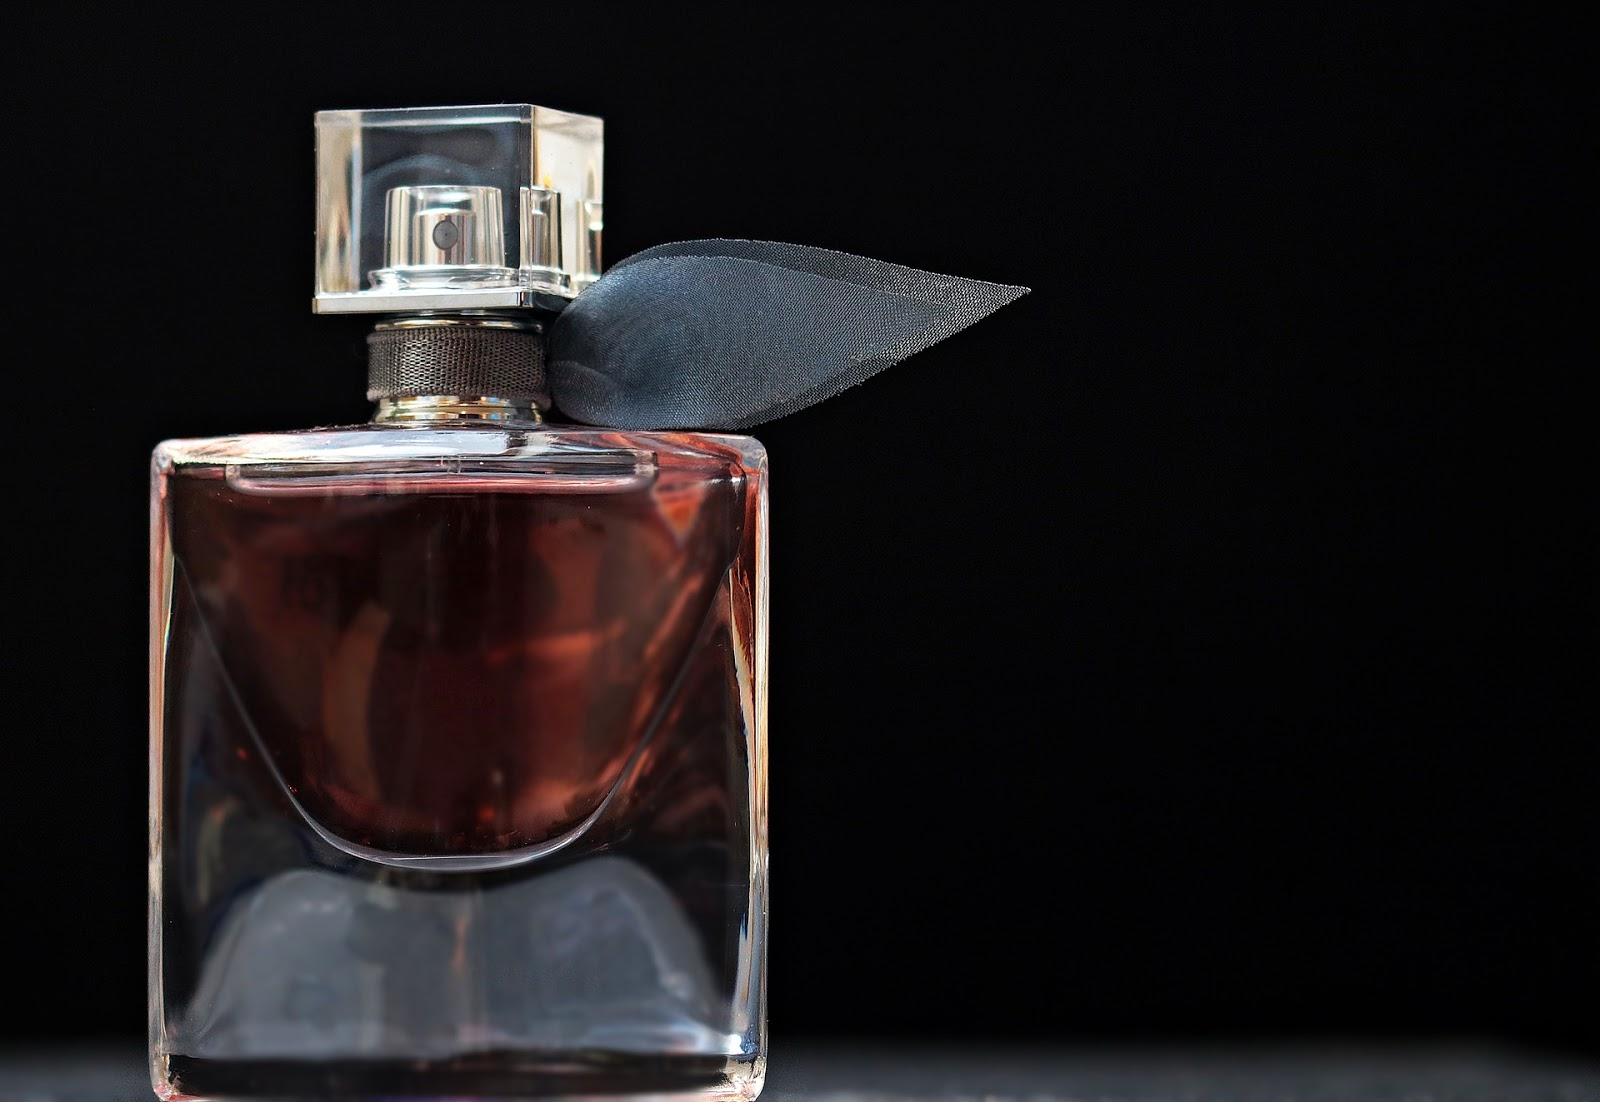 7 Perfumes For The Manliest Men That Woman Loves | Grooming